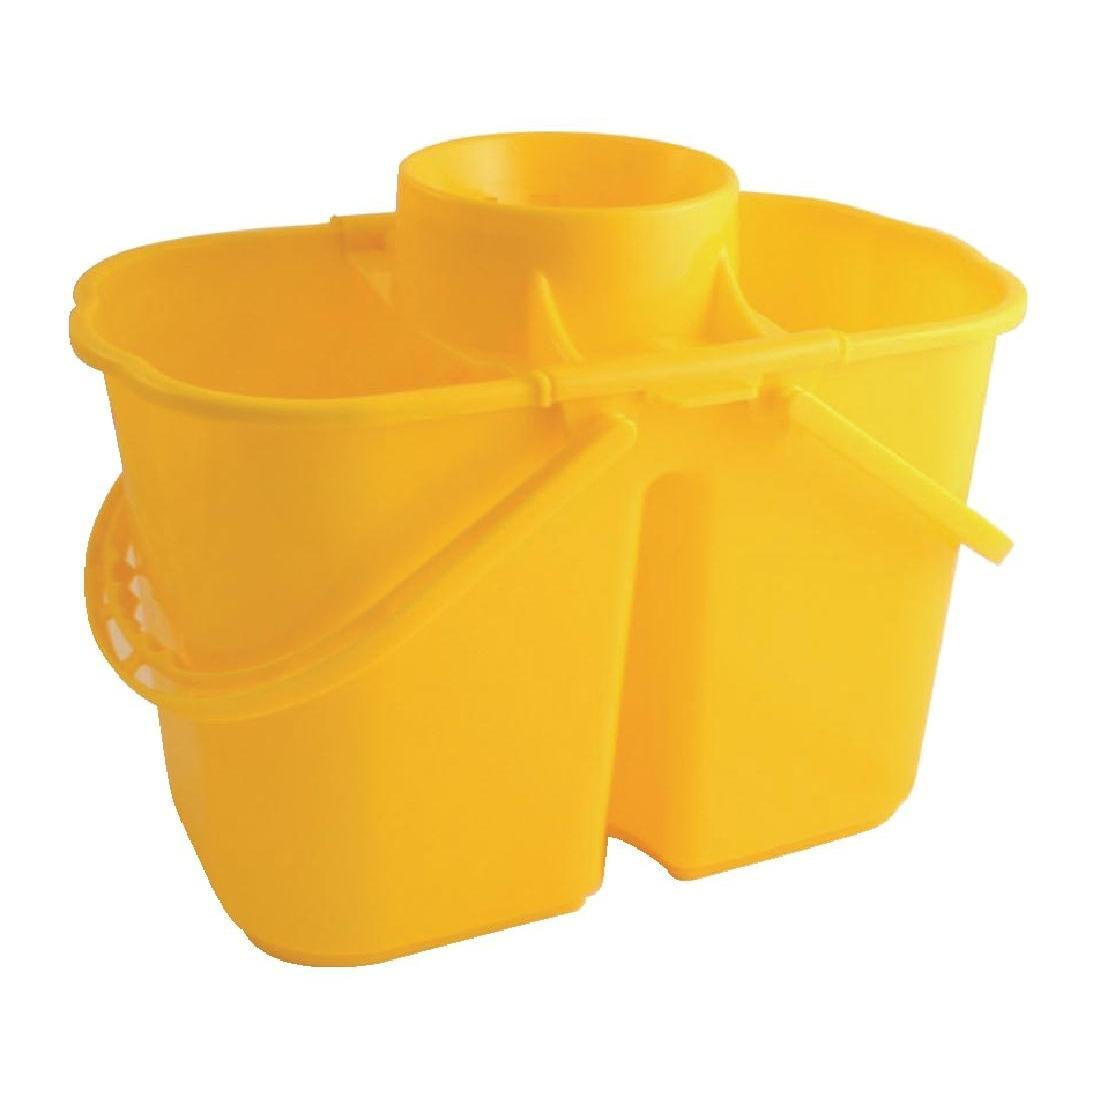 Jantex Colour Coded Twin Mop Buckets Yellow